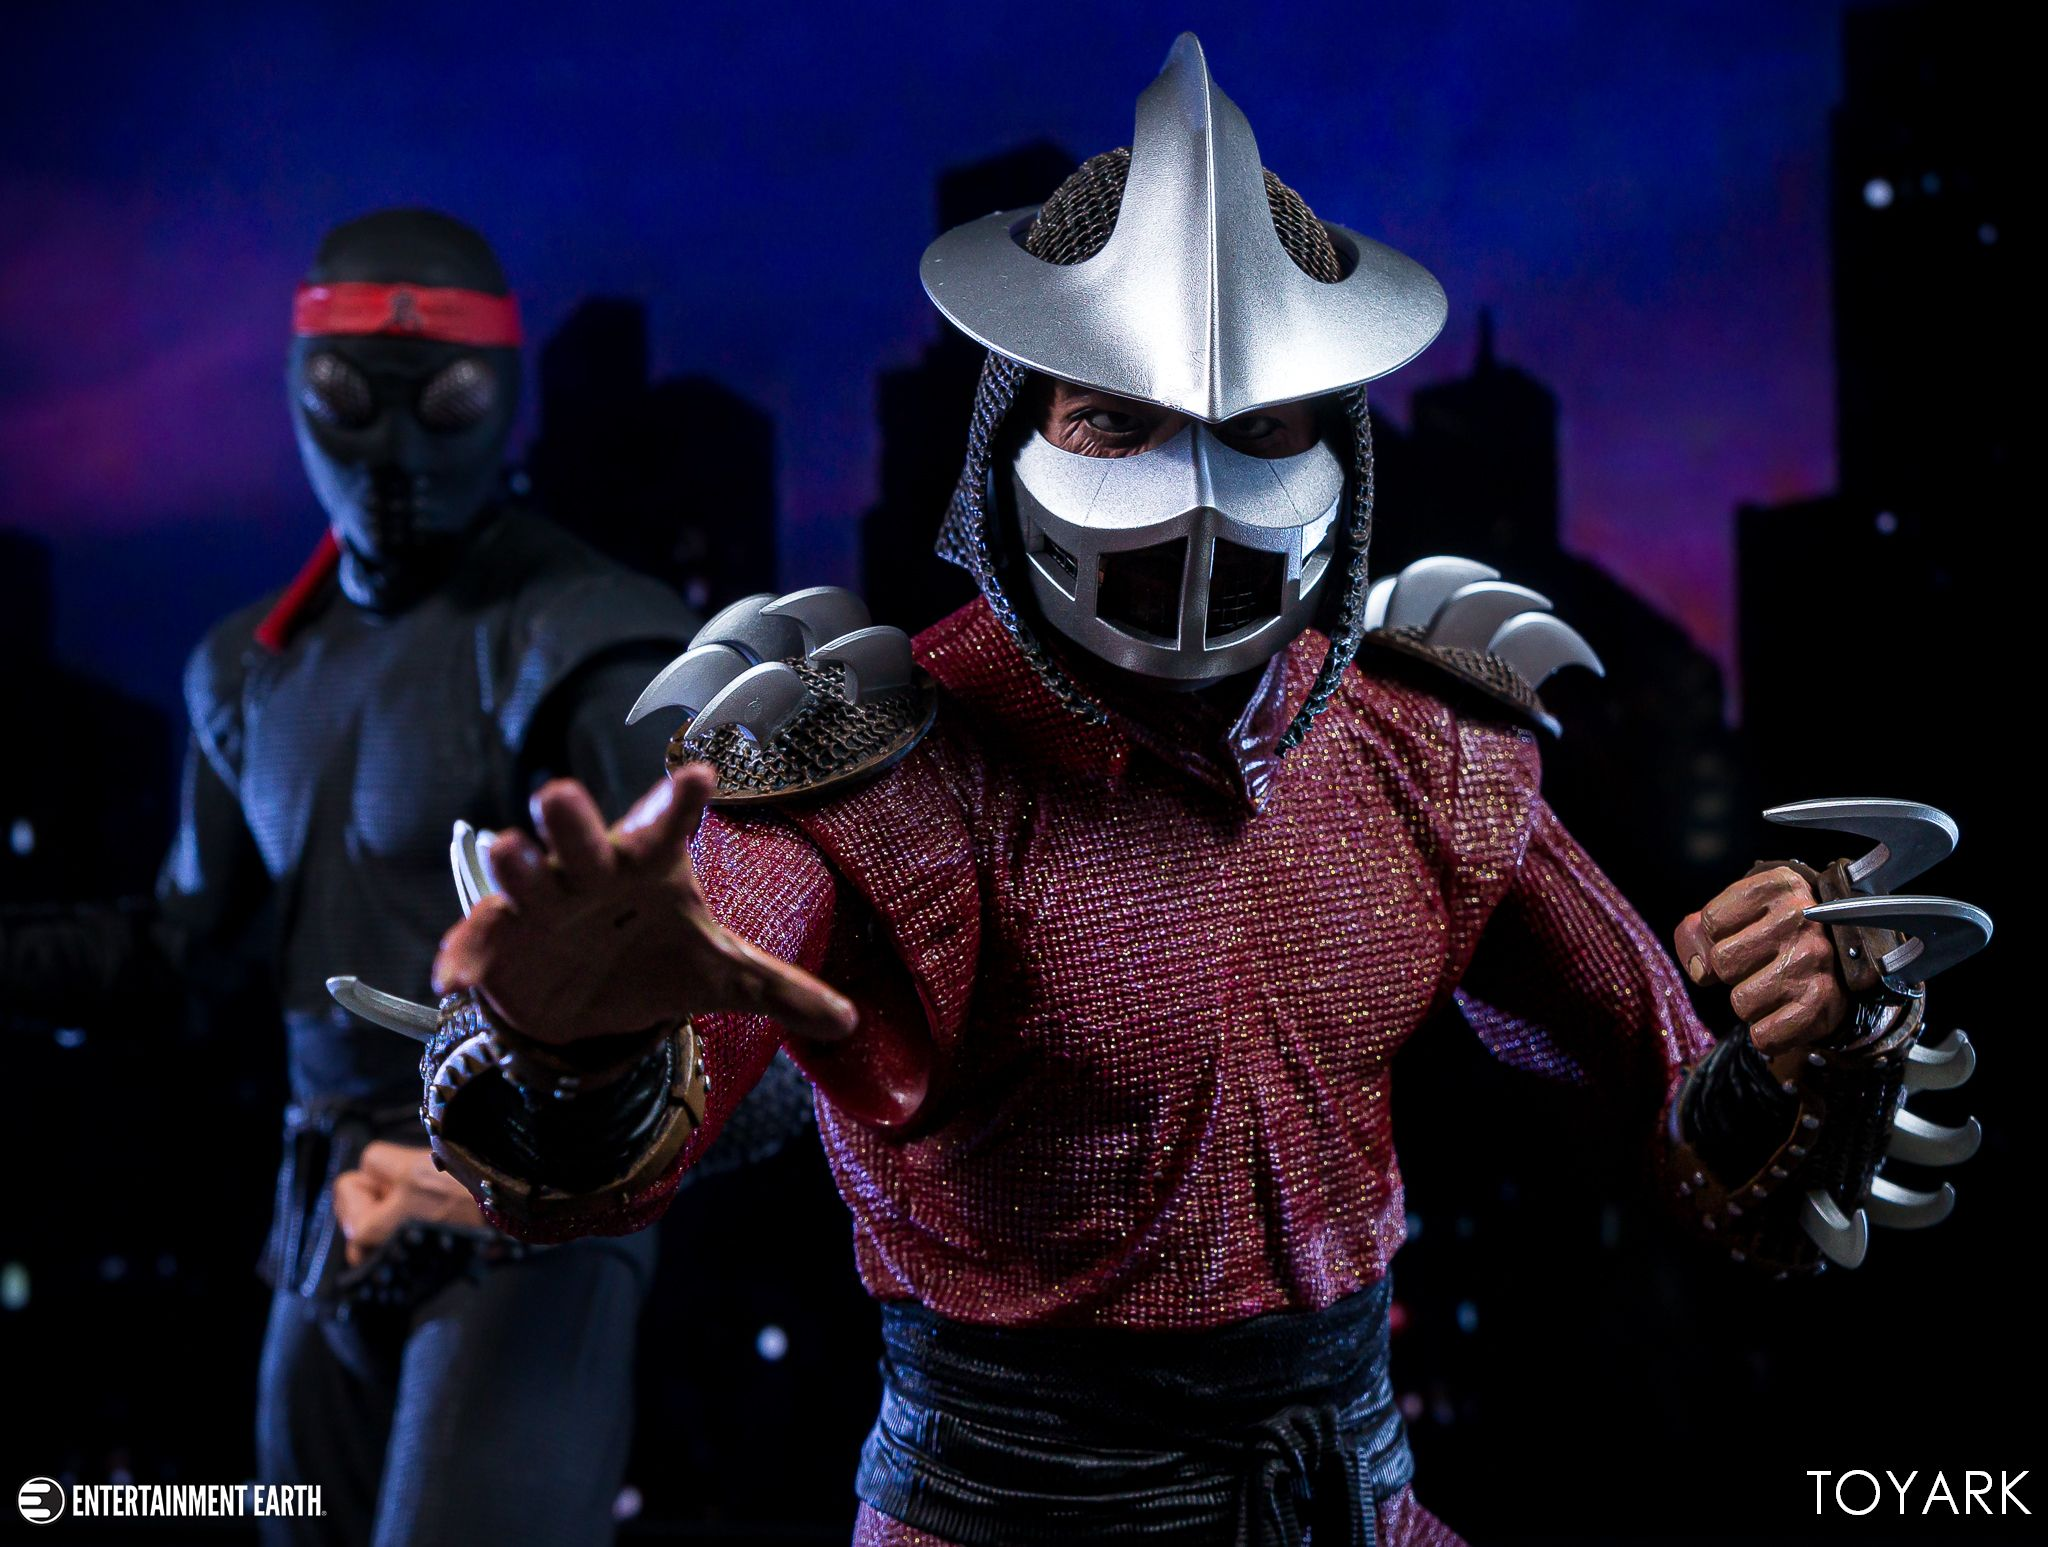 https://news.toyark.com/wp-content/uploads/sites/4/2019/06/NECA-1990-TMNT-Shredder-034.jpg